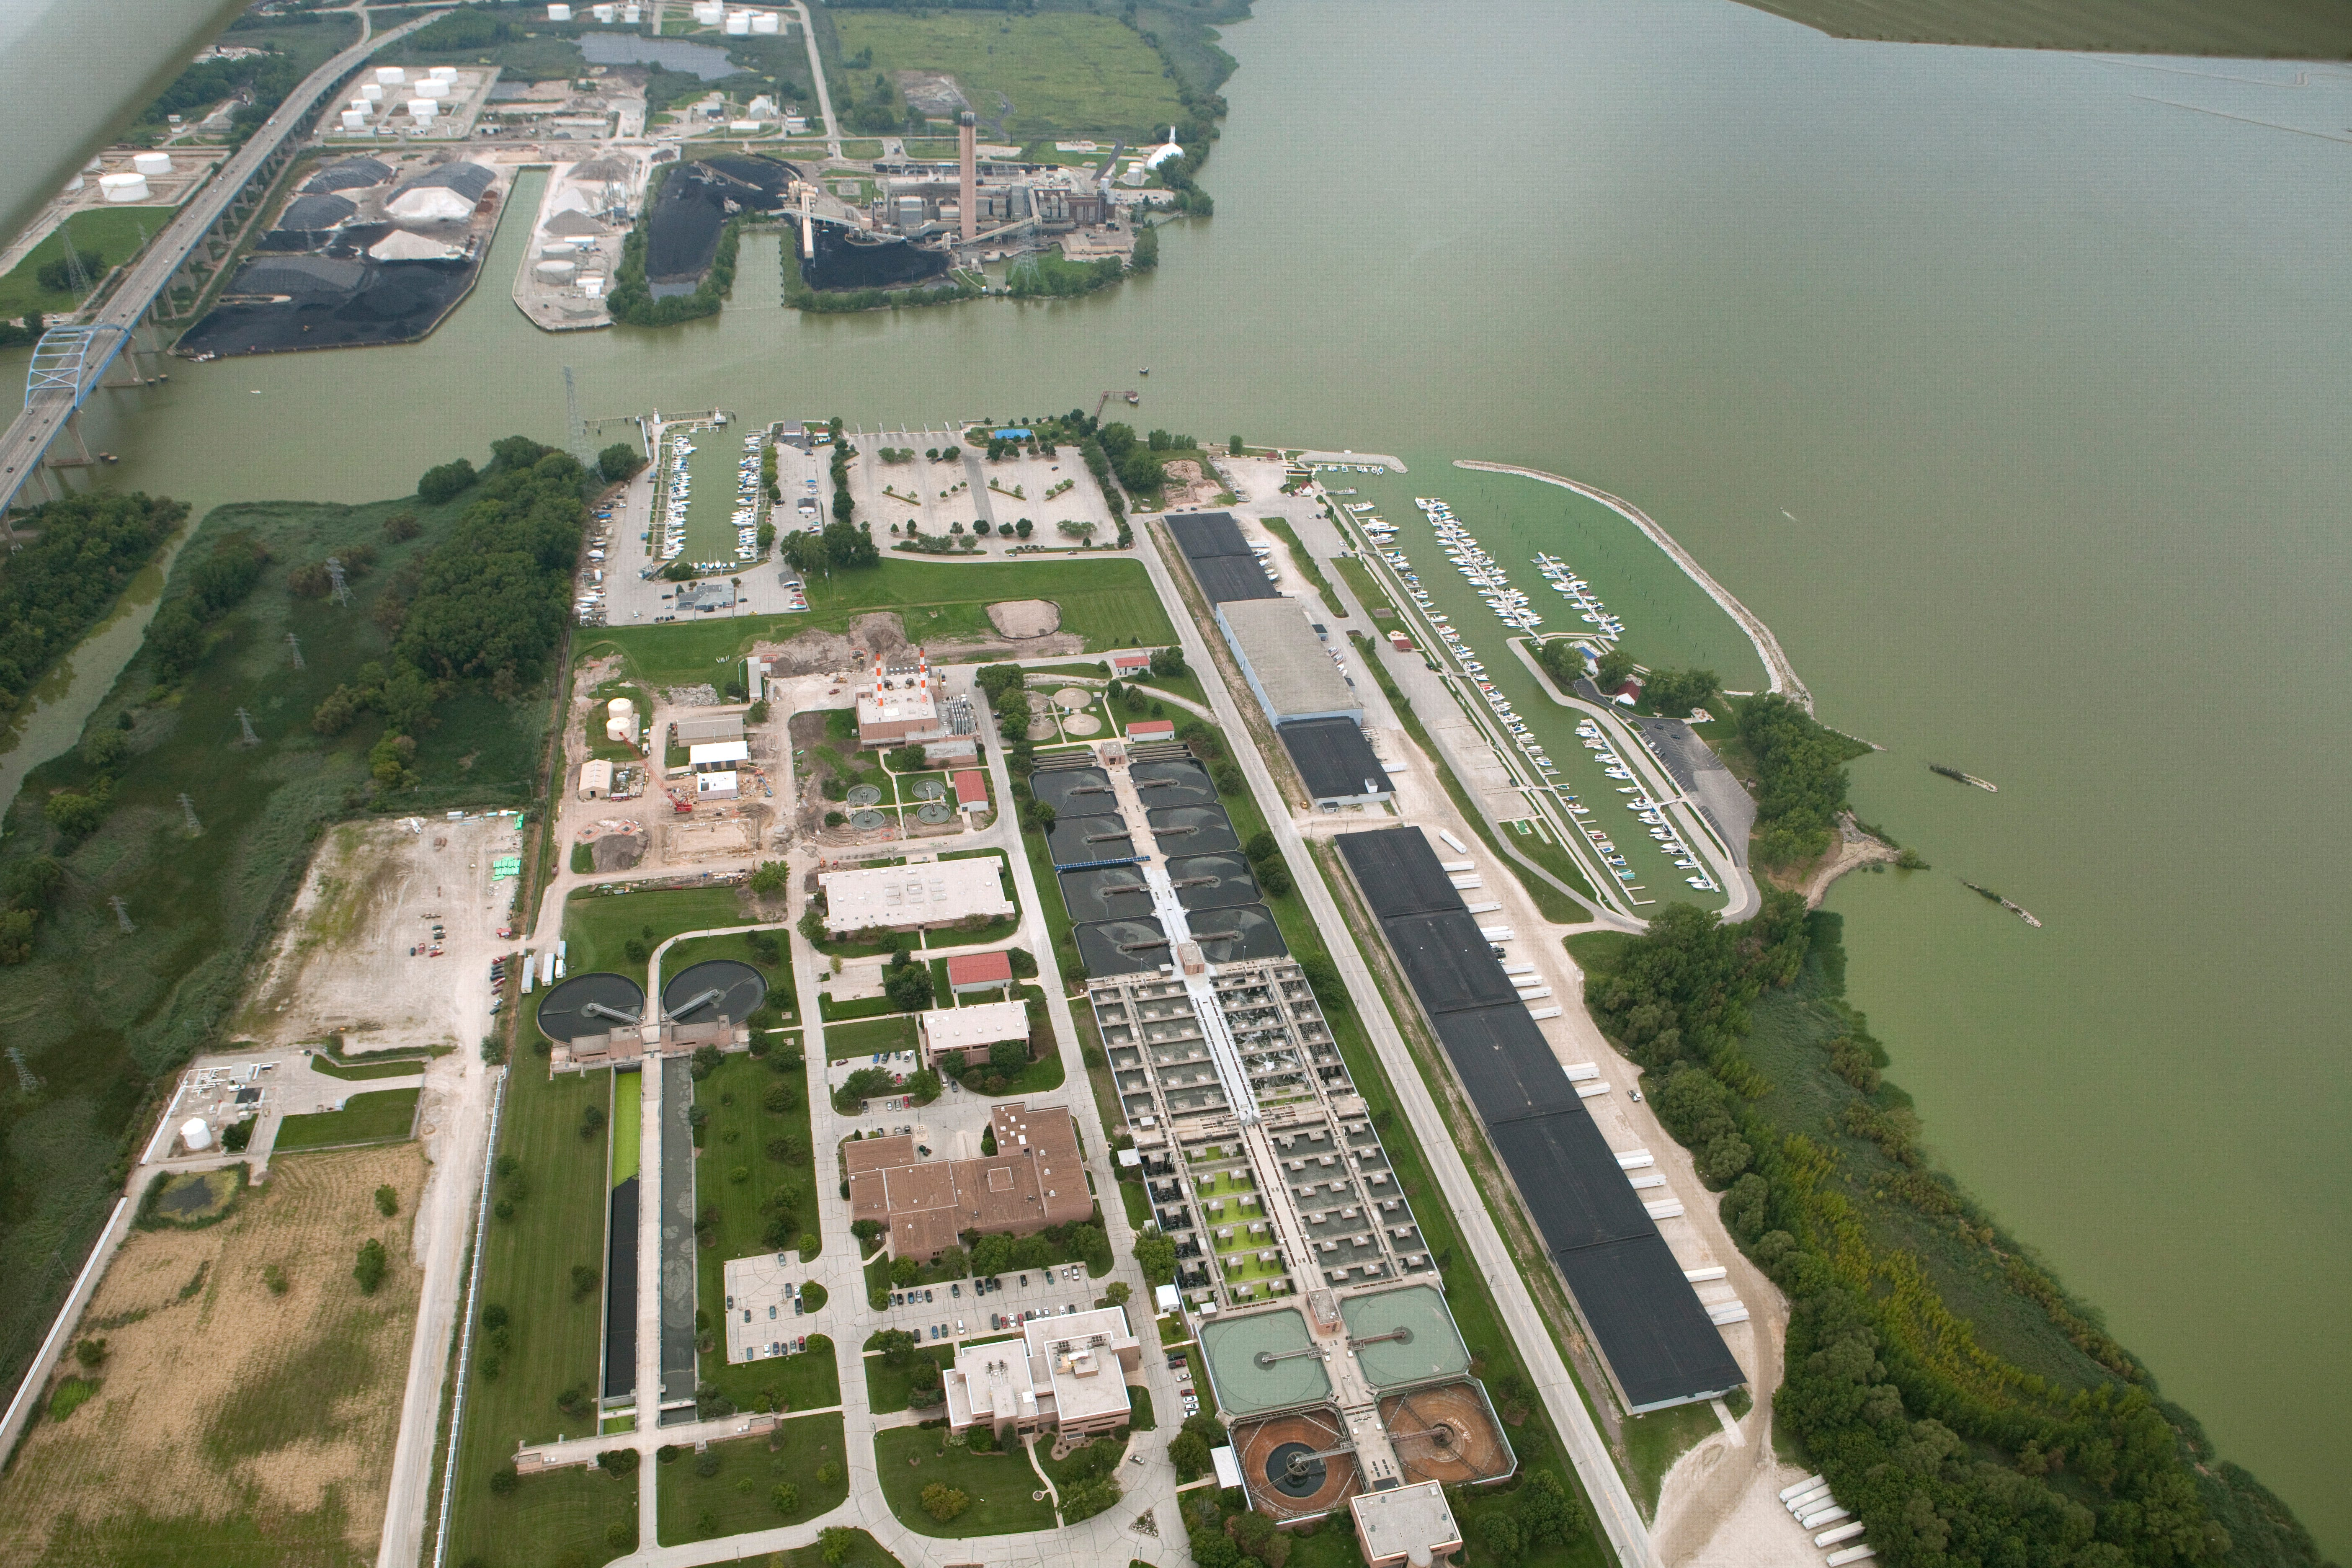 The Green Bay Metropolitan Sewerage District's sewage treatment plant is shown Thursday, August 28, 2014 on the east shore of the Fox River mouth in Green Bay, Wis.